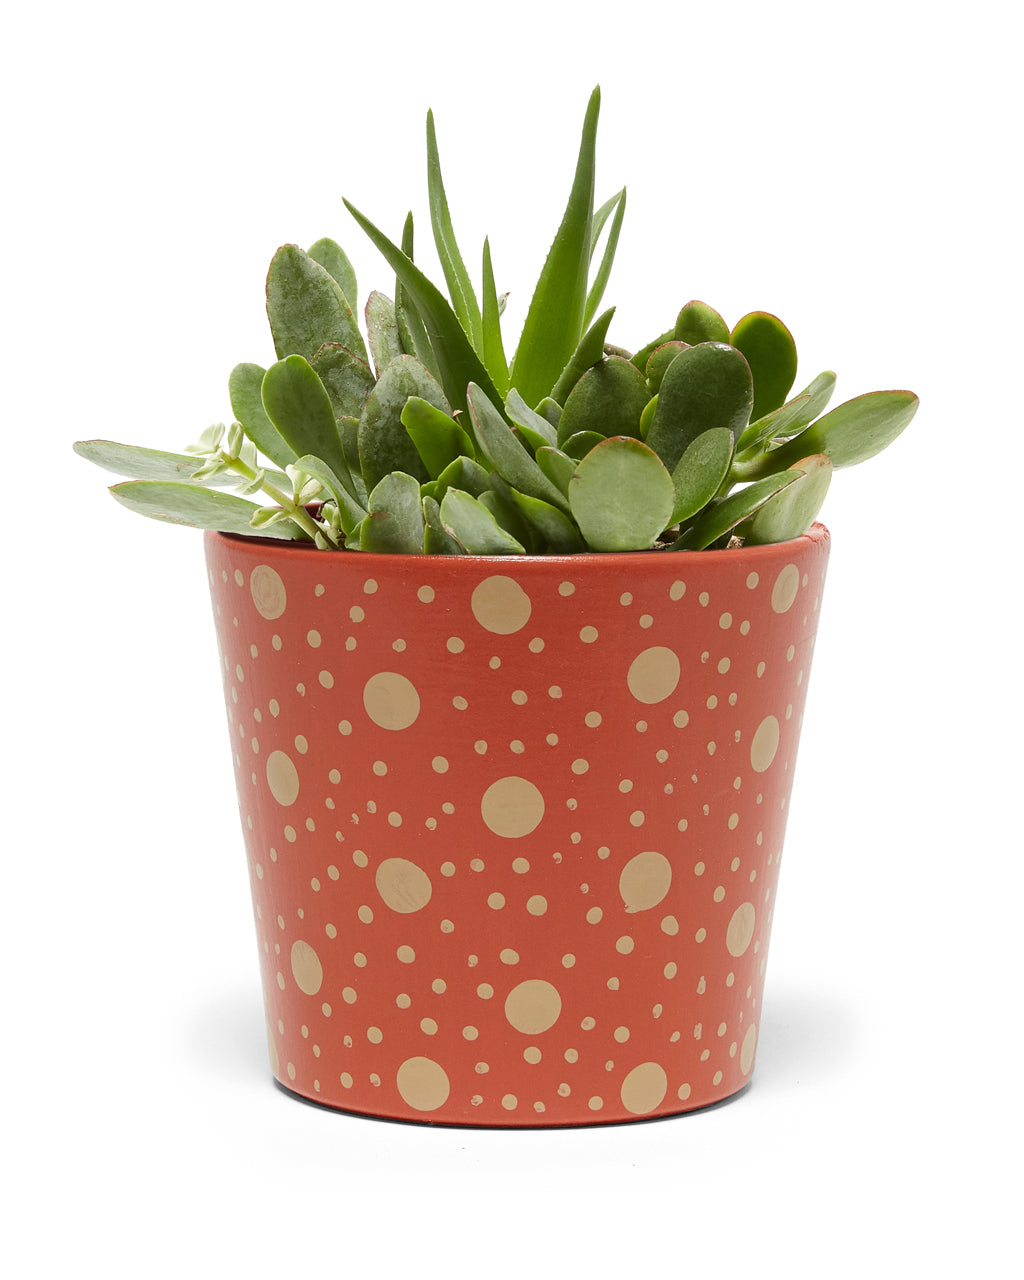 sienna colored polka dot planter with plant